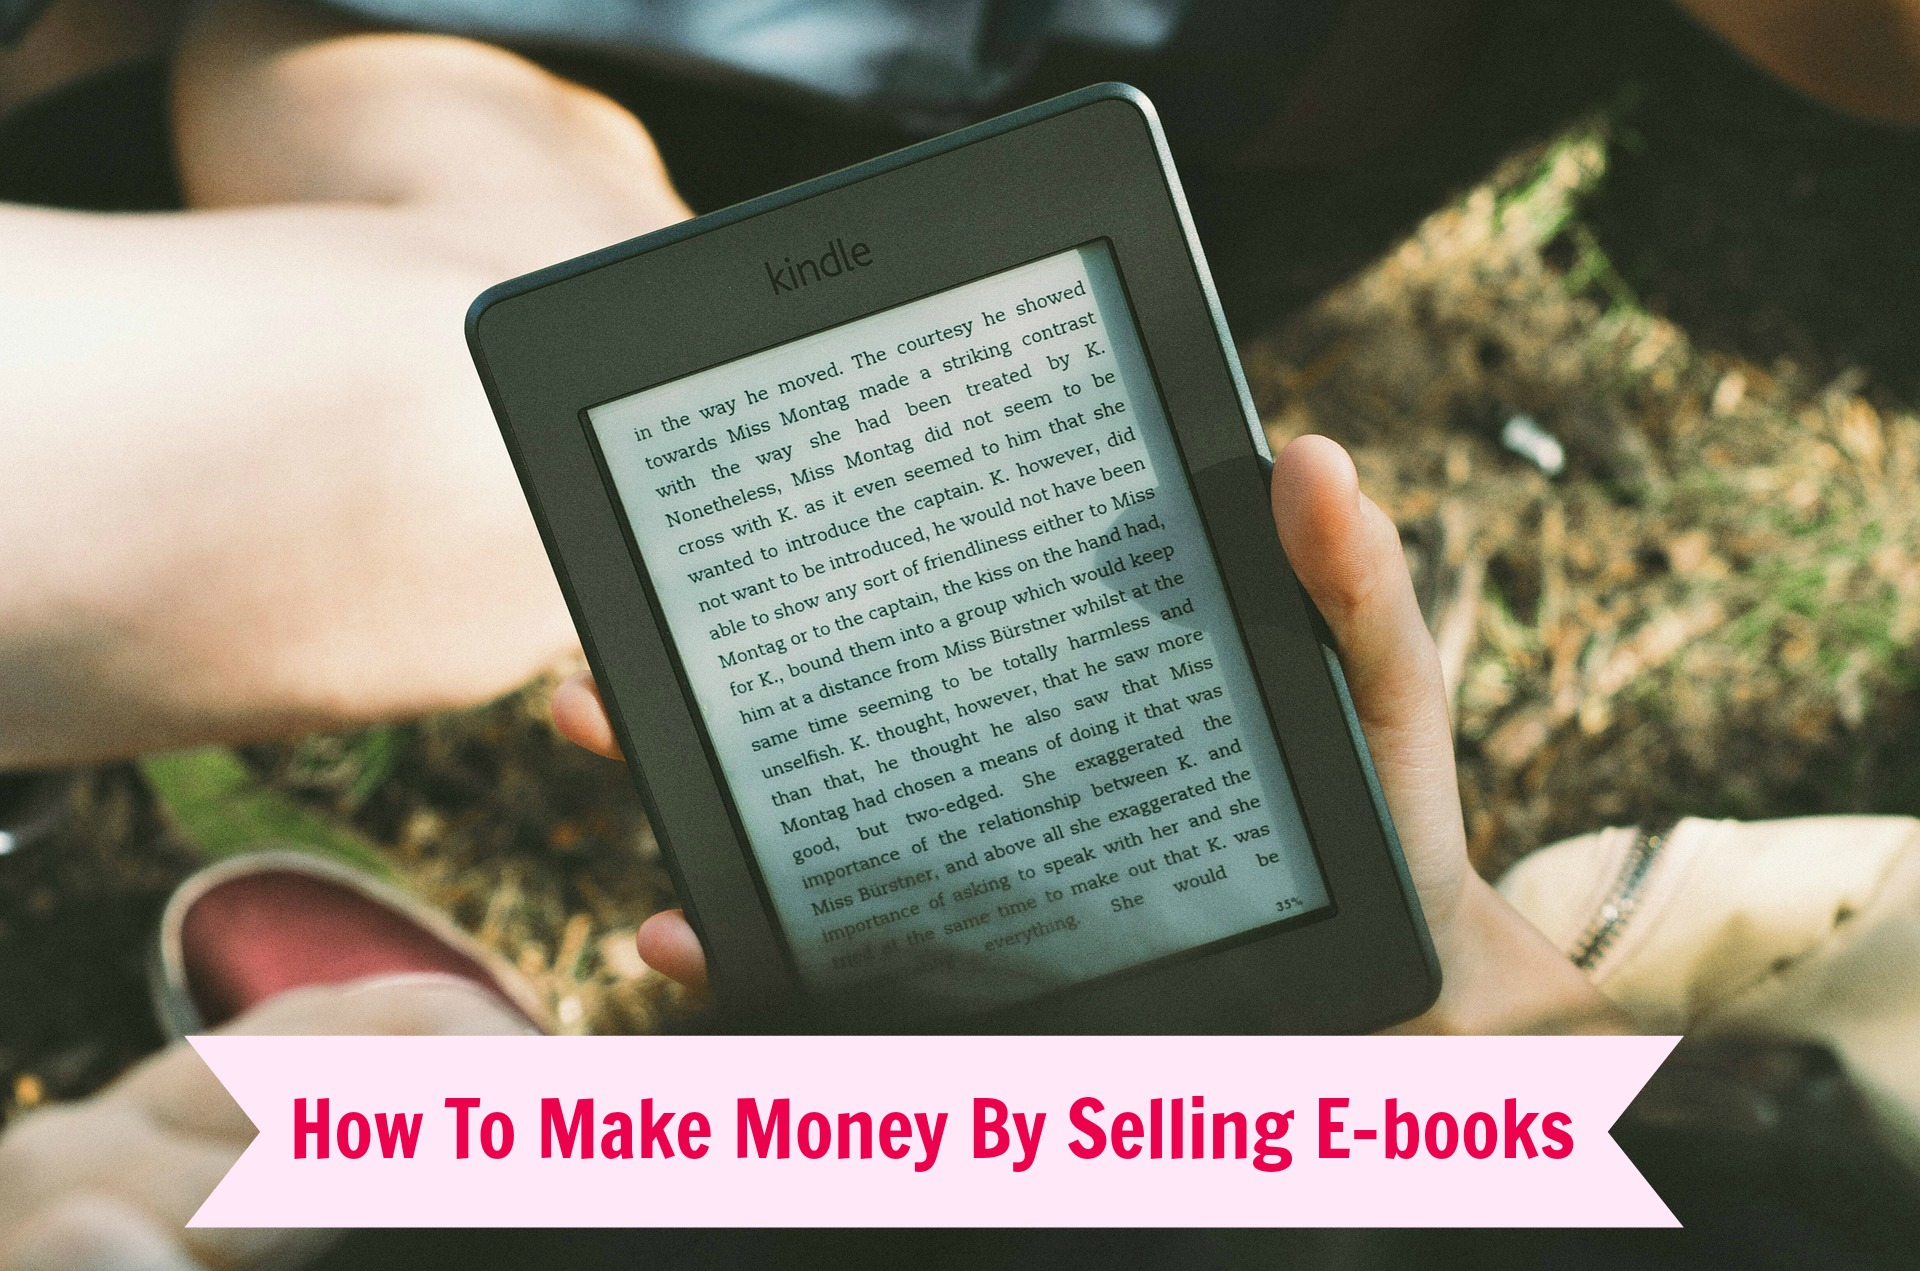 Selling E-books - everything you need to know